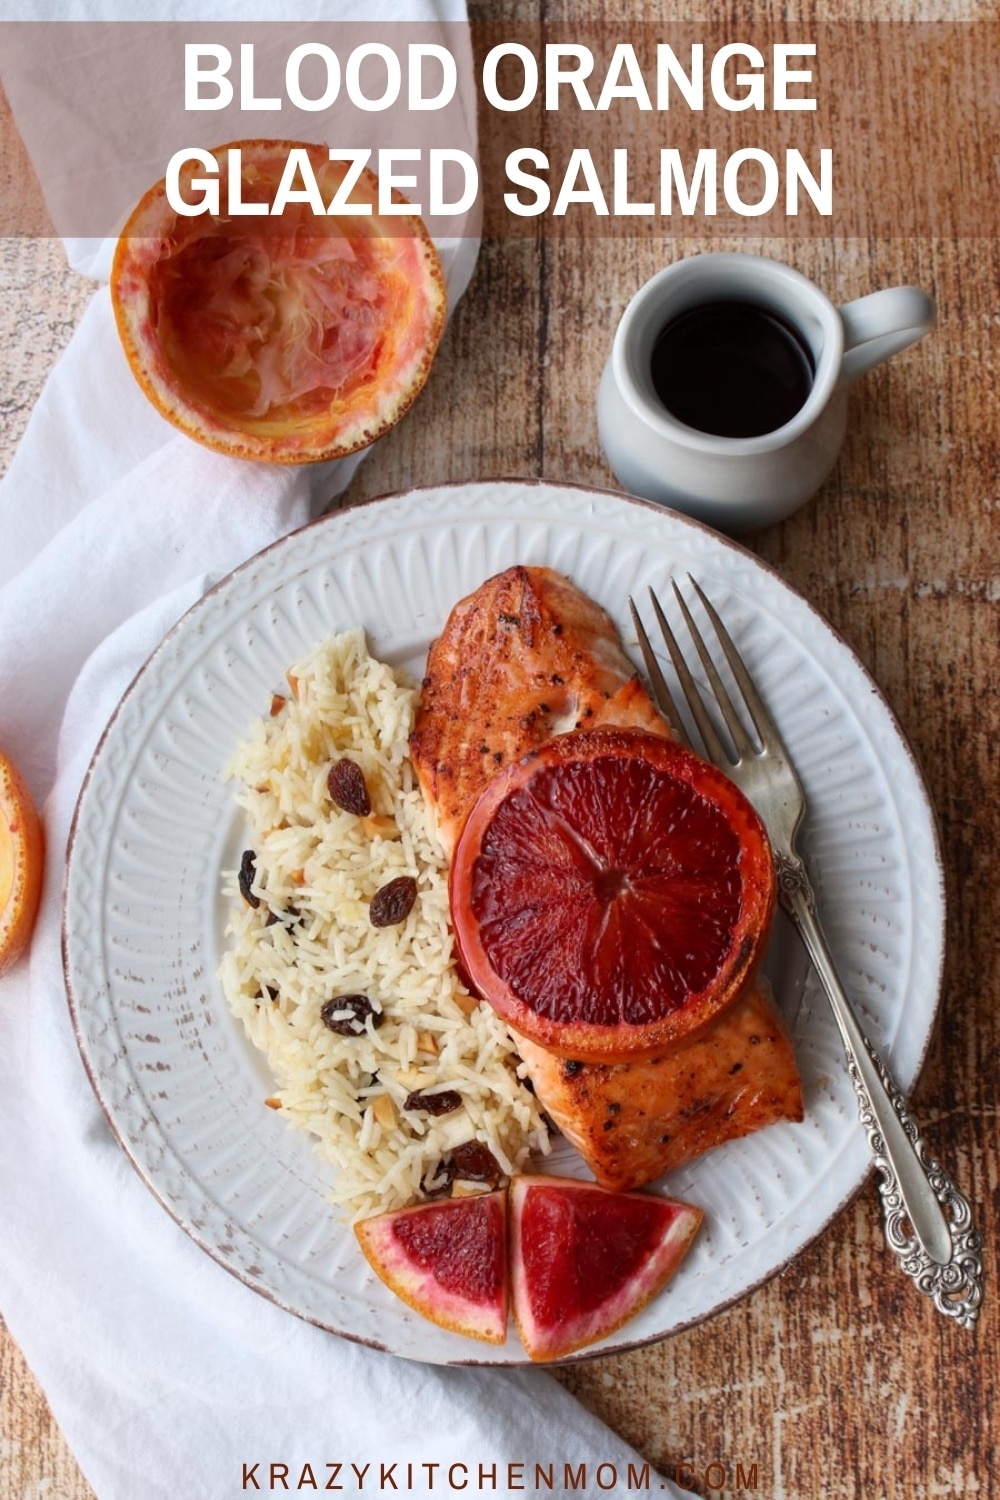 Sweet savory blood orange glaze kisses these salmon filets with all the right flavors. It's so good, you'll want to add it to your regular dinner rotation. via @krazykitchenmom